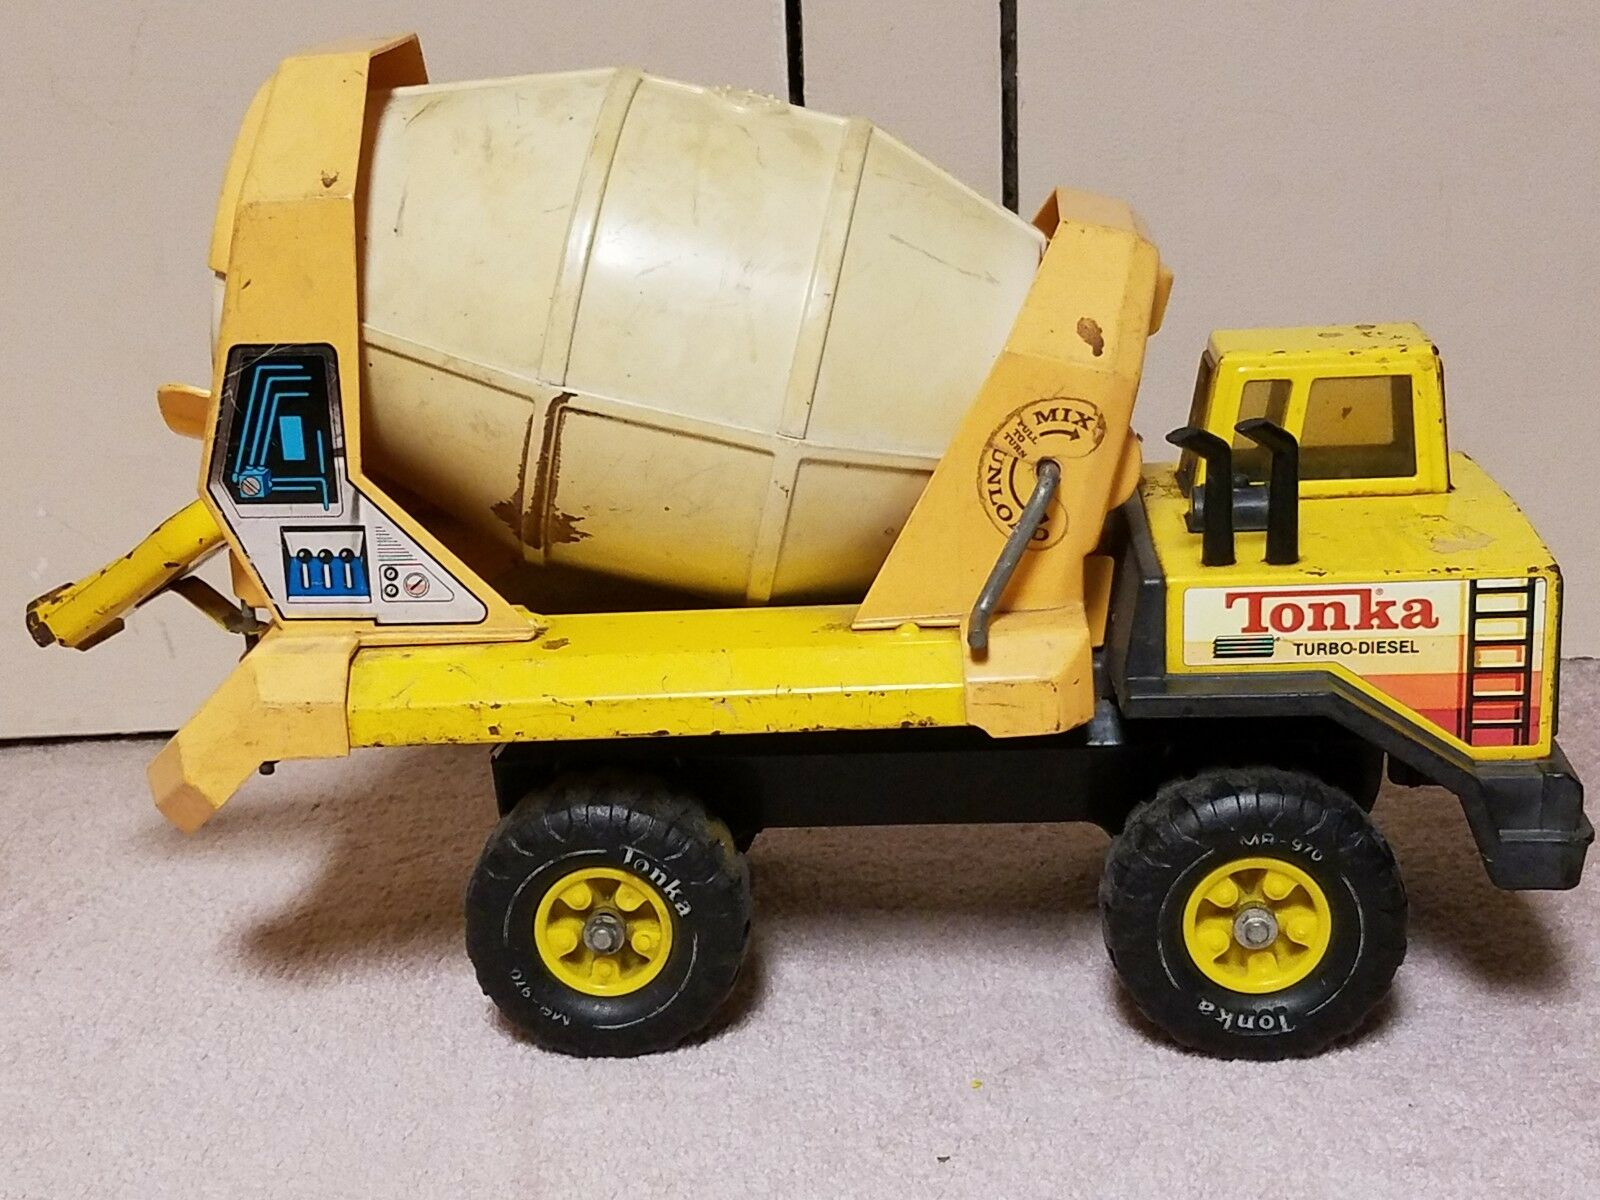 Tonka Concrete Mixer Turbo Diesel Vintage 1970s 19 inches long